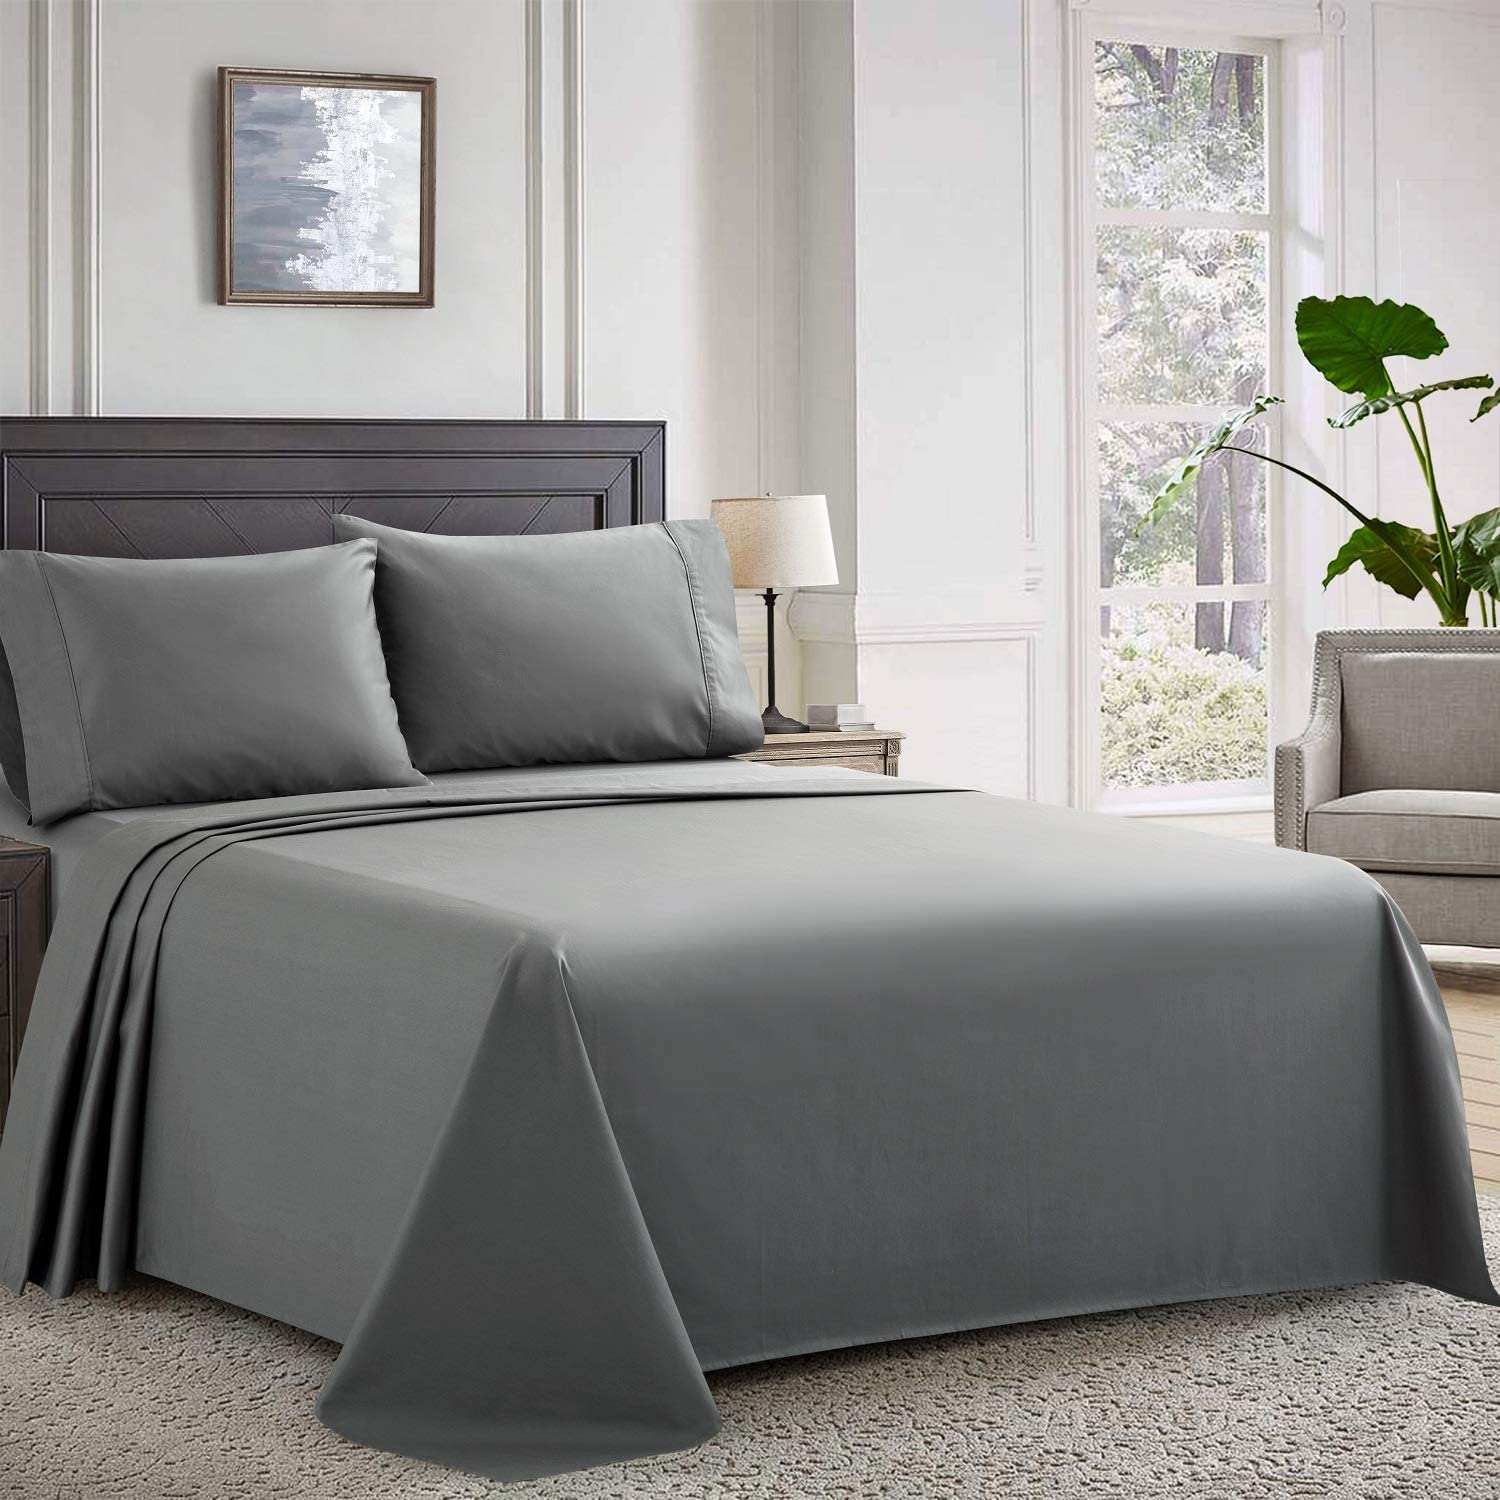 Newspin Cotton Bed Sheets Set with 16 inch Deep Pockets 400-Thread-Count